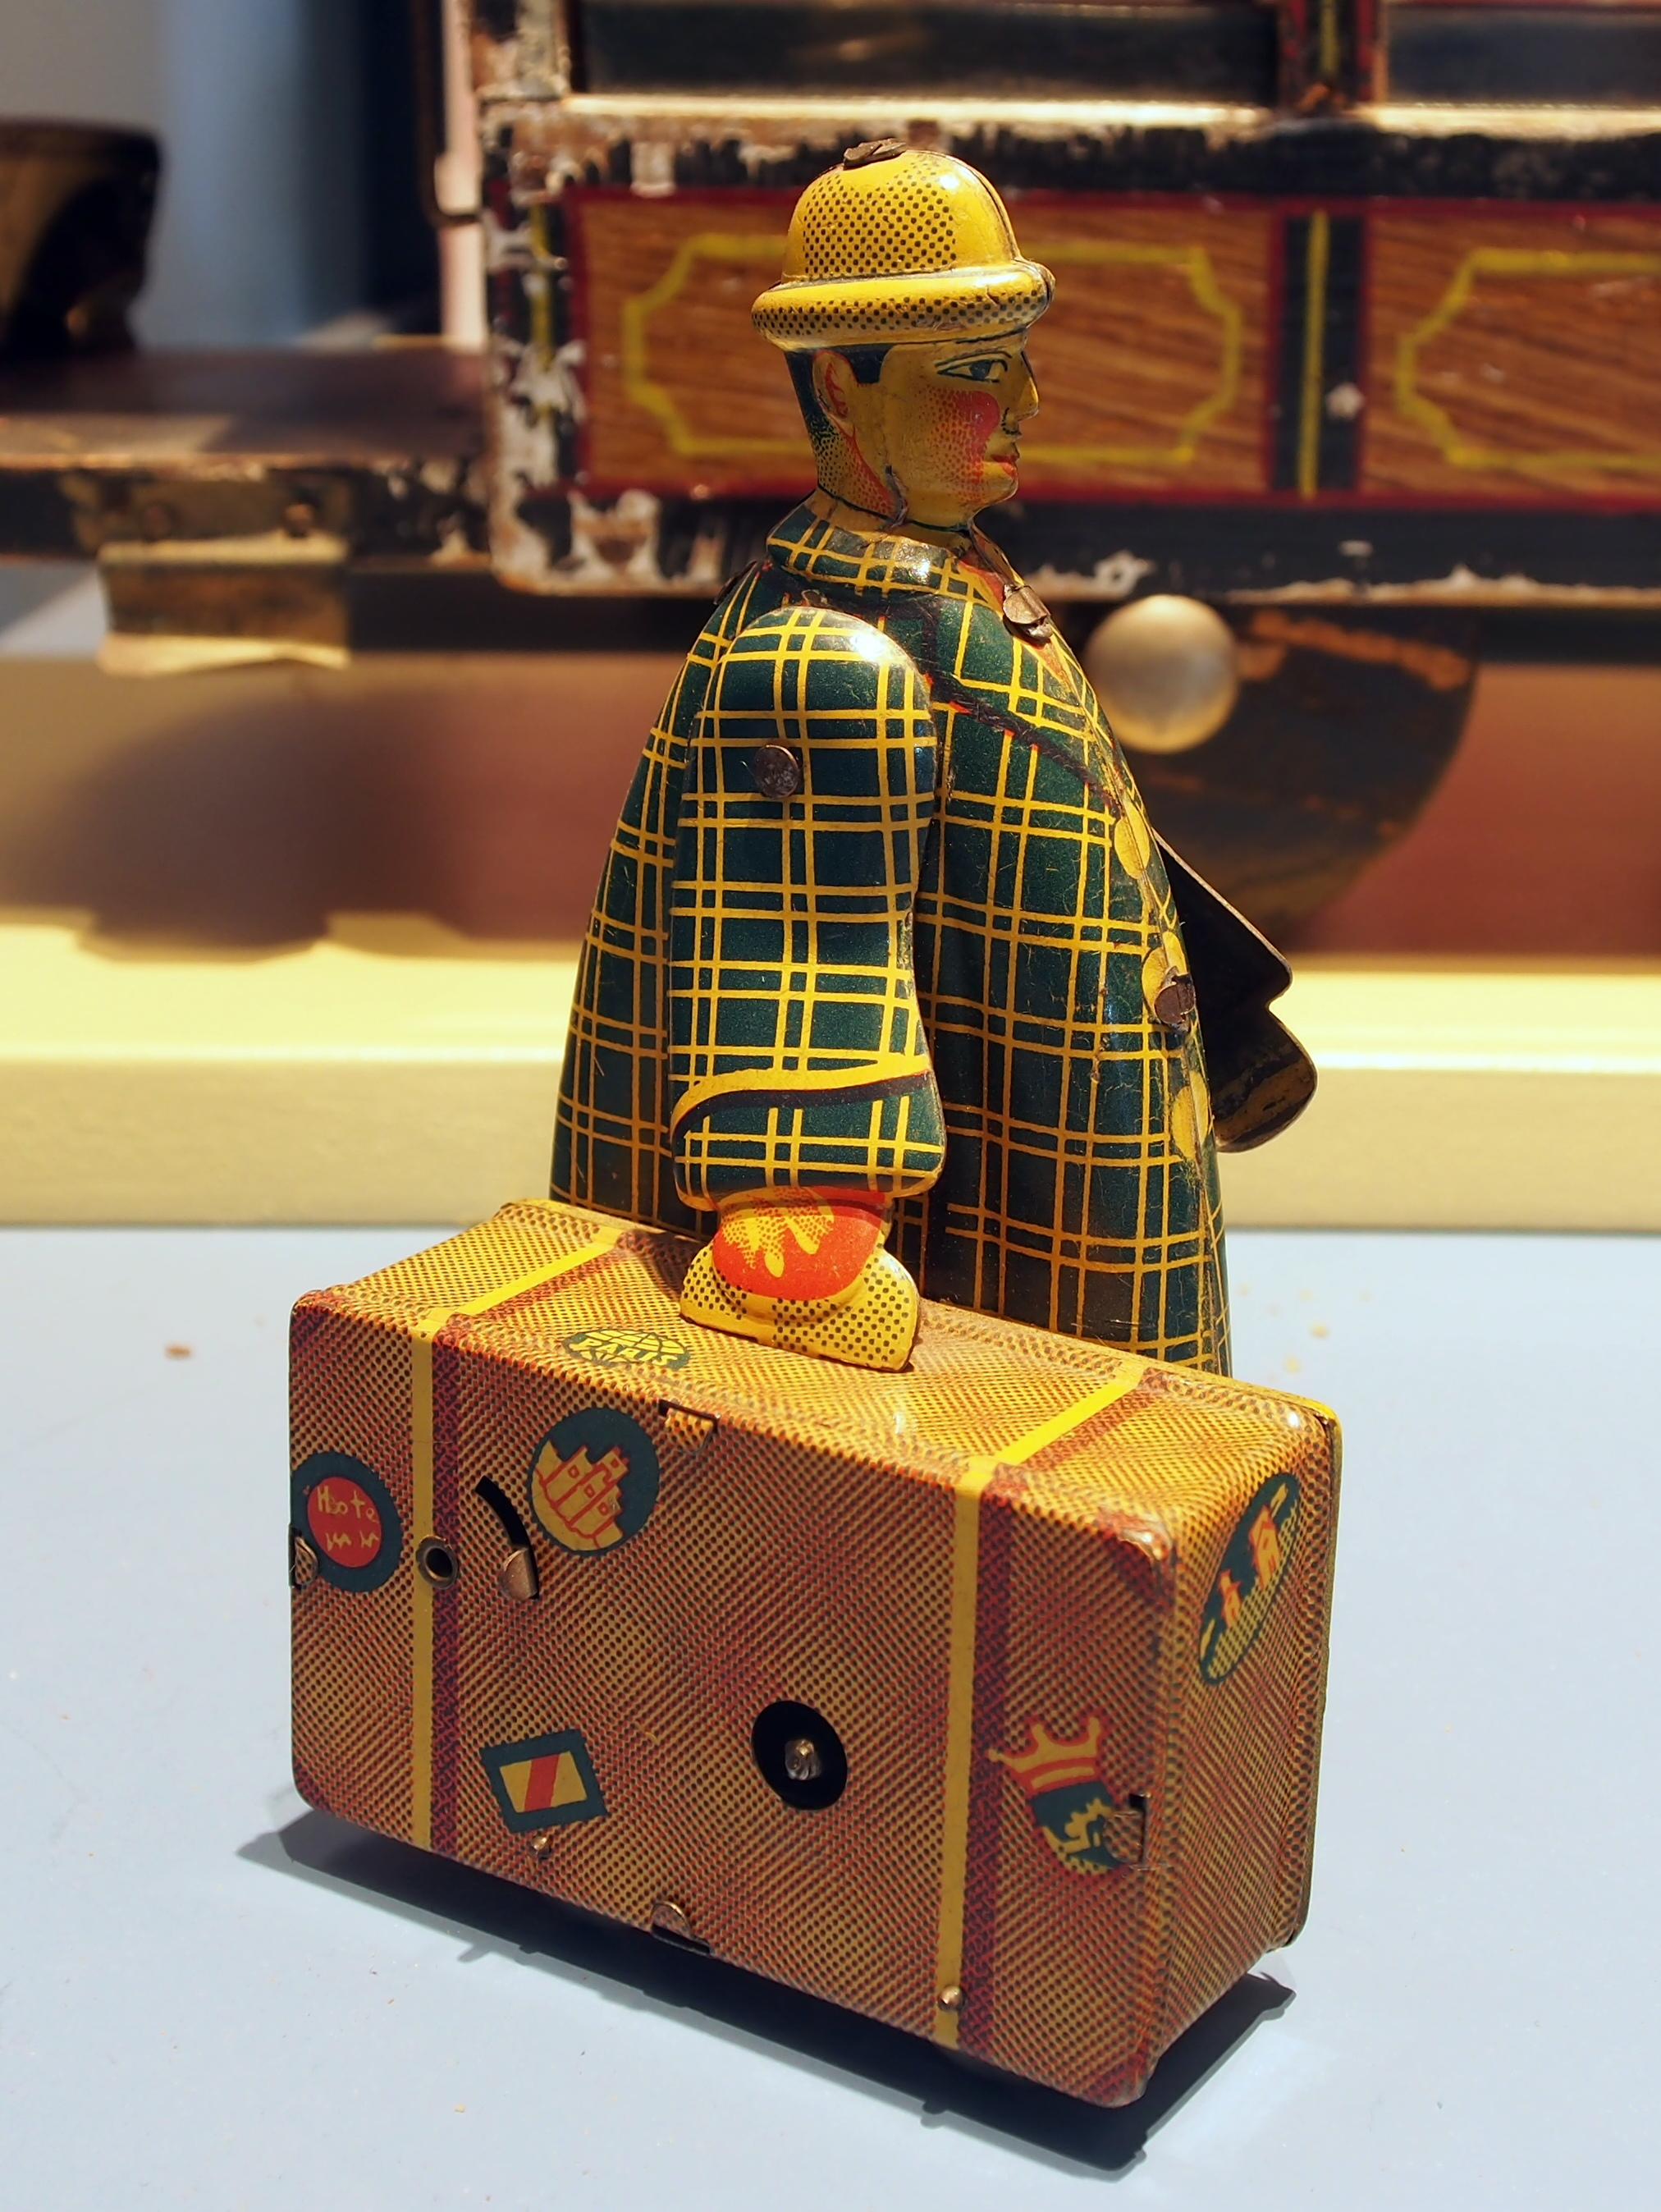 Speelgoedmuseum_Deventer__clockwork_wind-up_tin_toy__traveler_with_suitcase_2.JPG